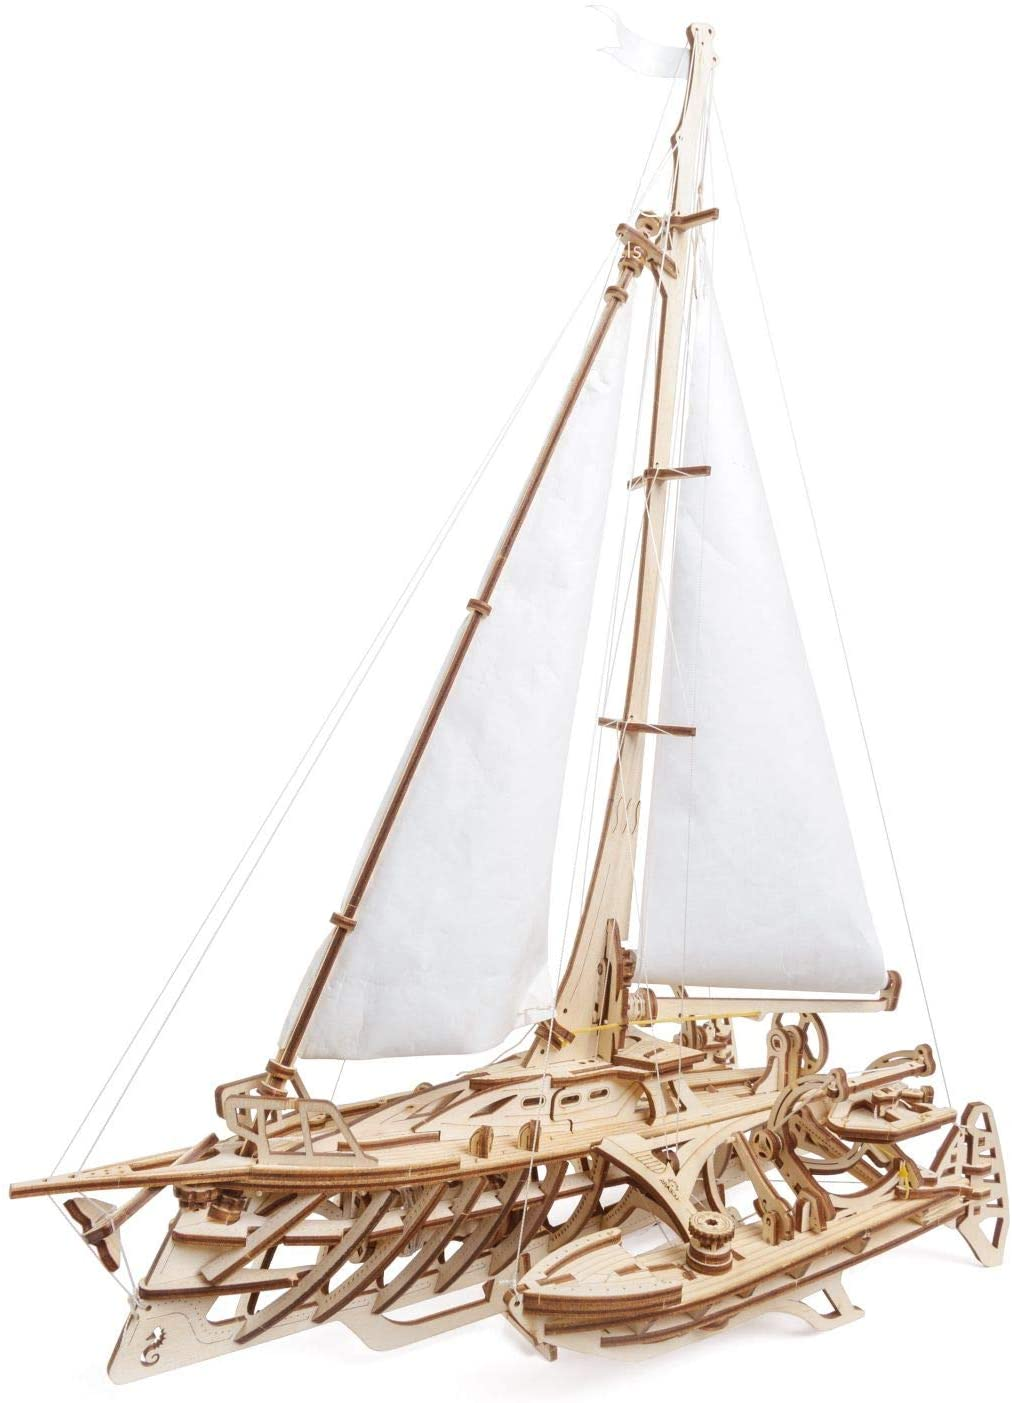 UGEARS 3d Puzzles For Adults Trimaran Merihobus - Wooden Mechanical Models Construction Craft Kits For Adults